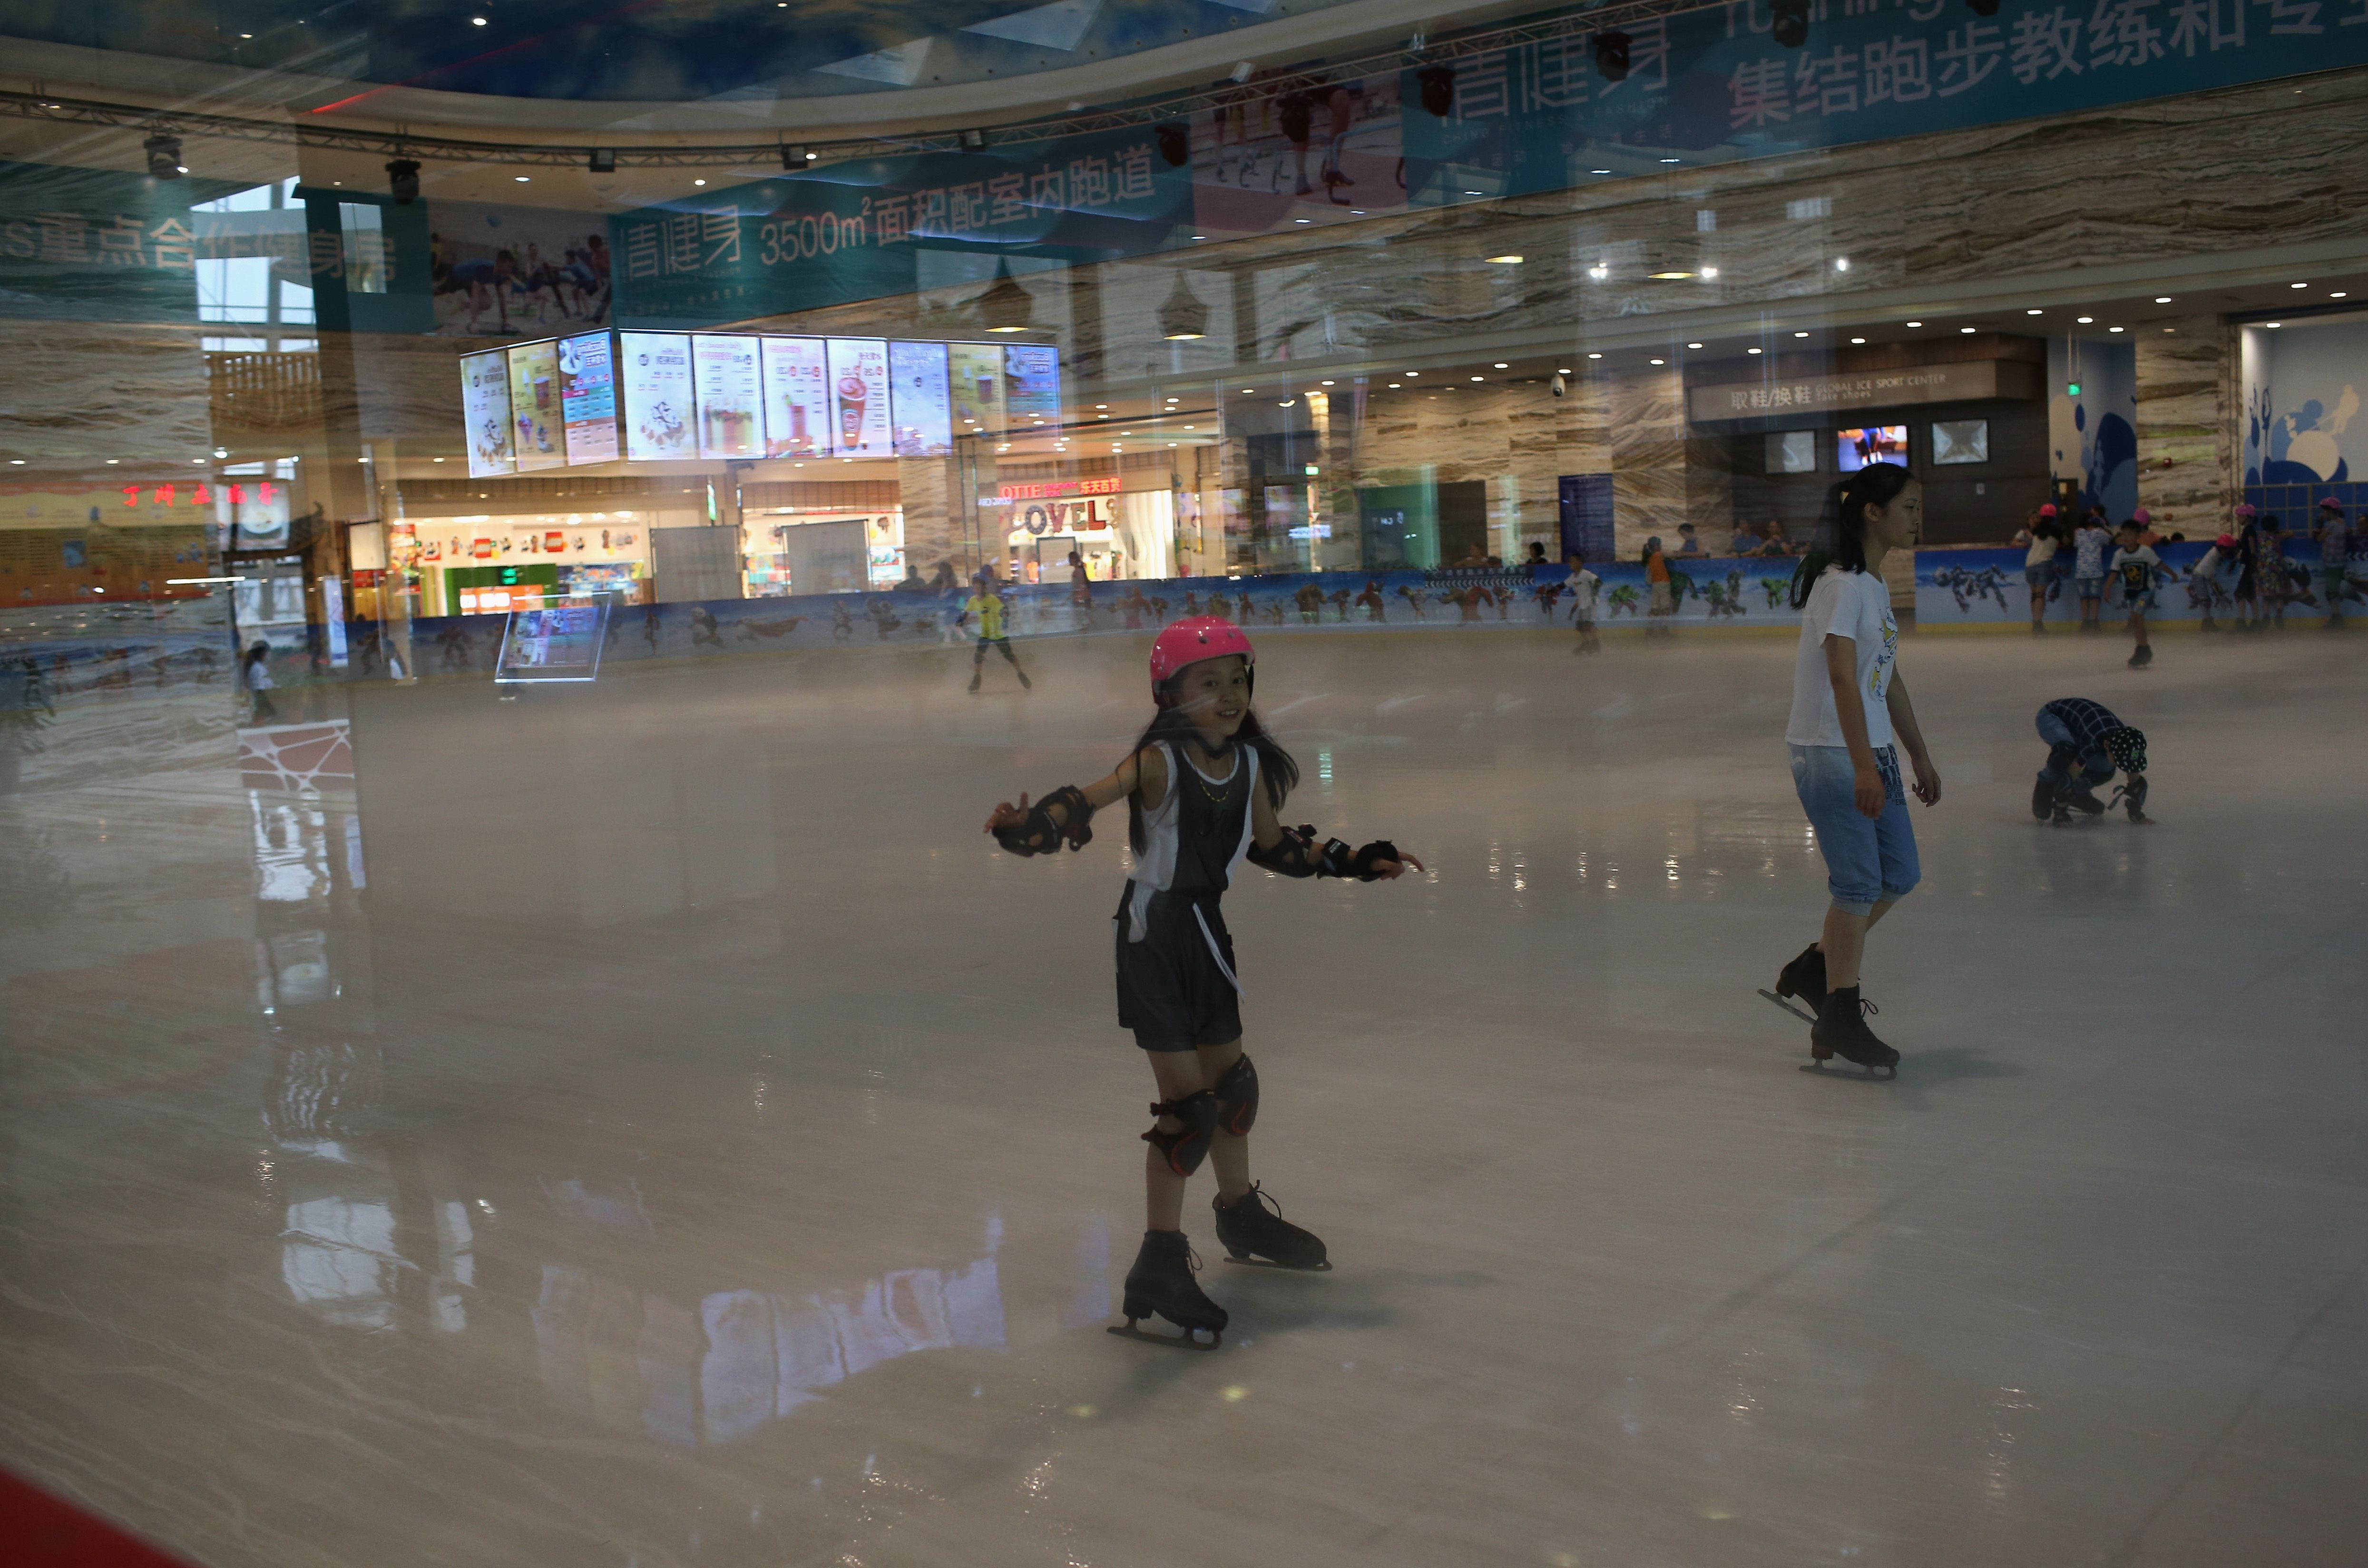 Indoor Ice Rink at the New Century Global Center in Chengdu, China